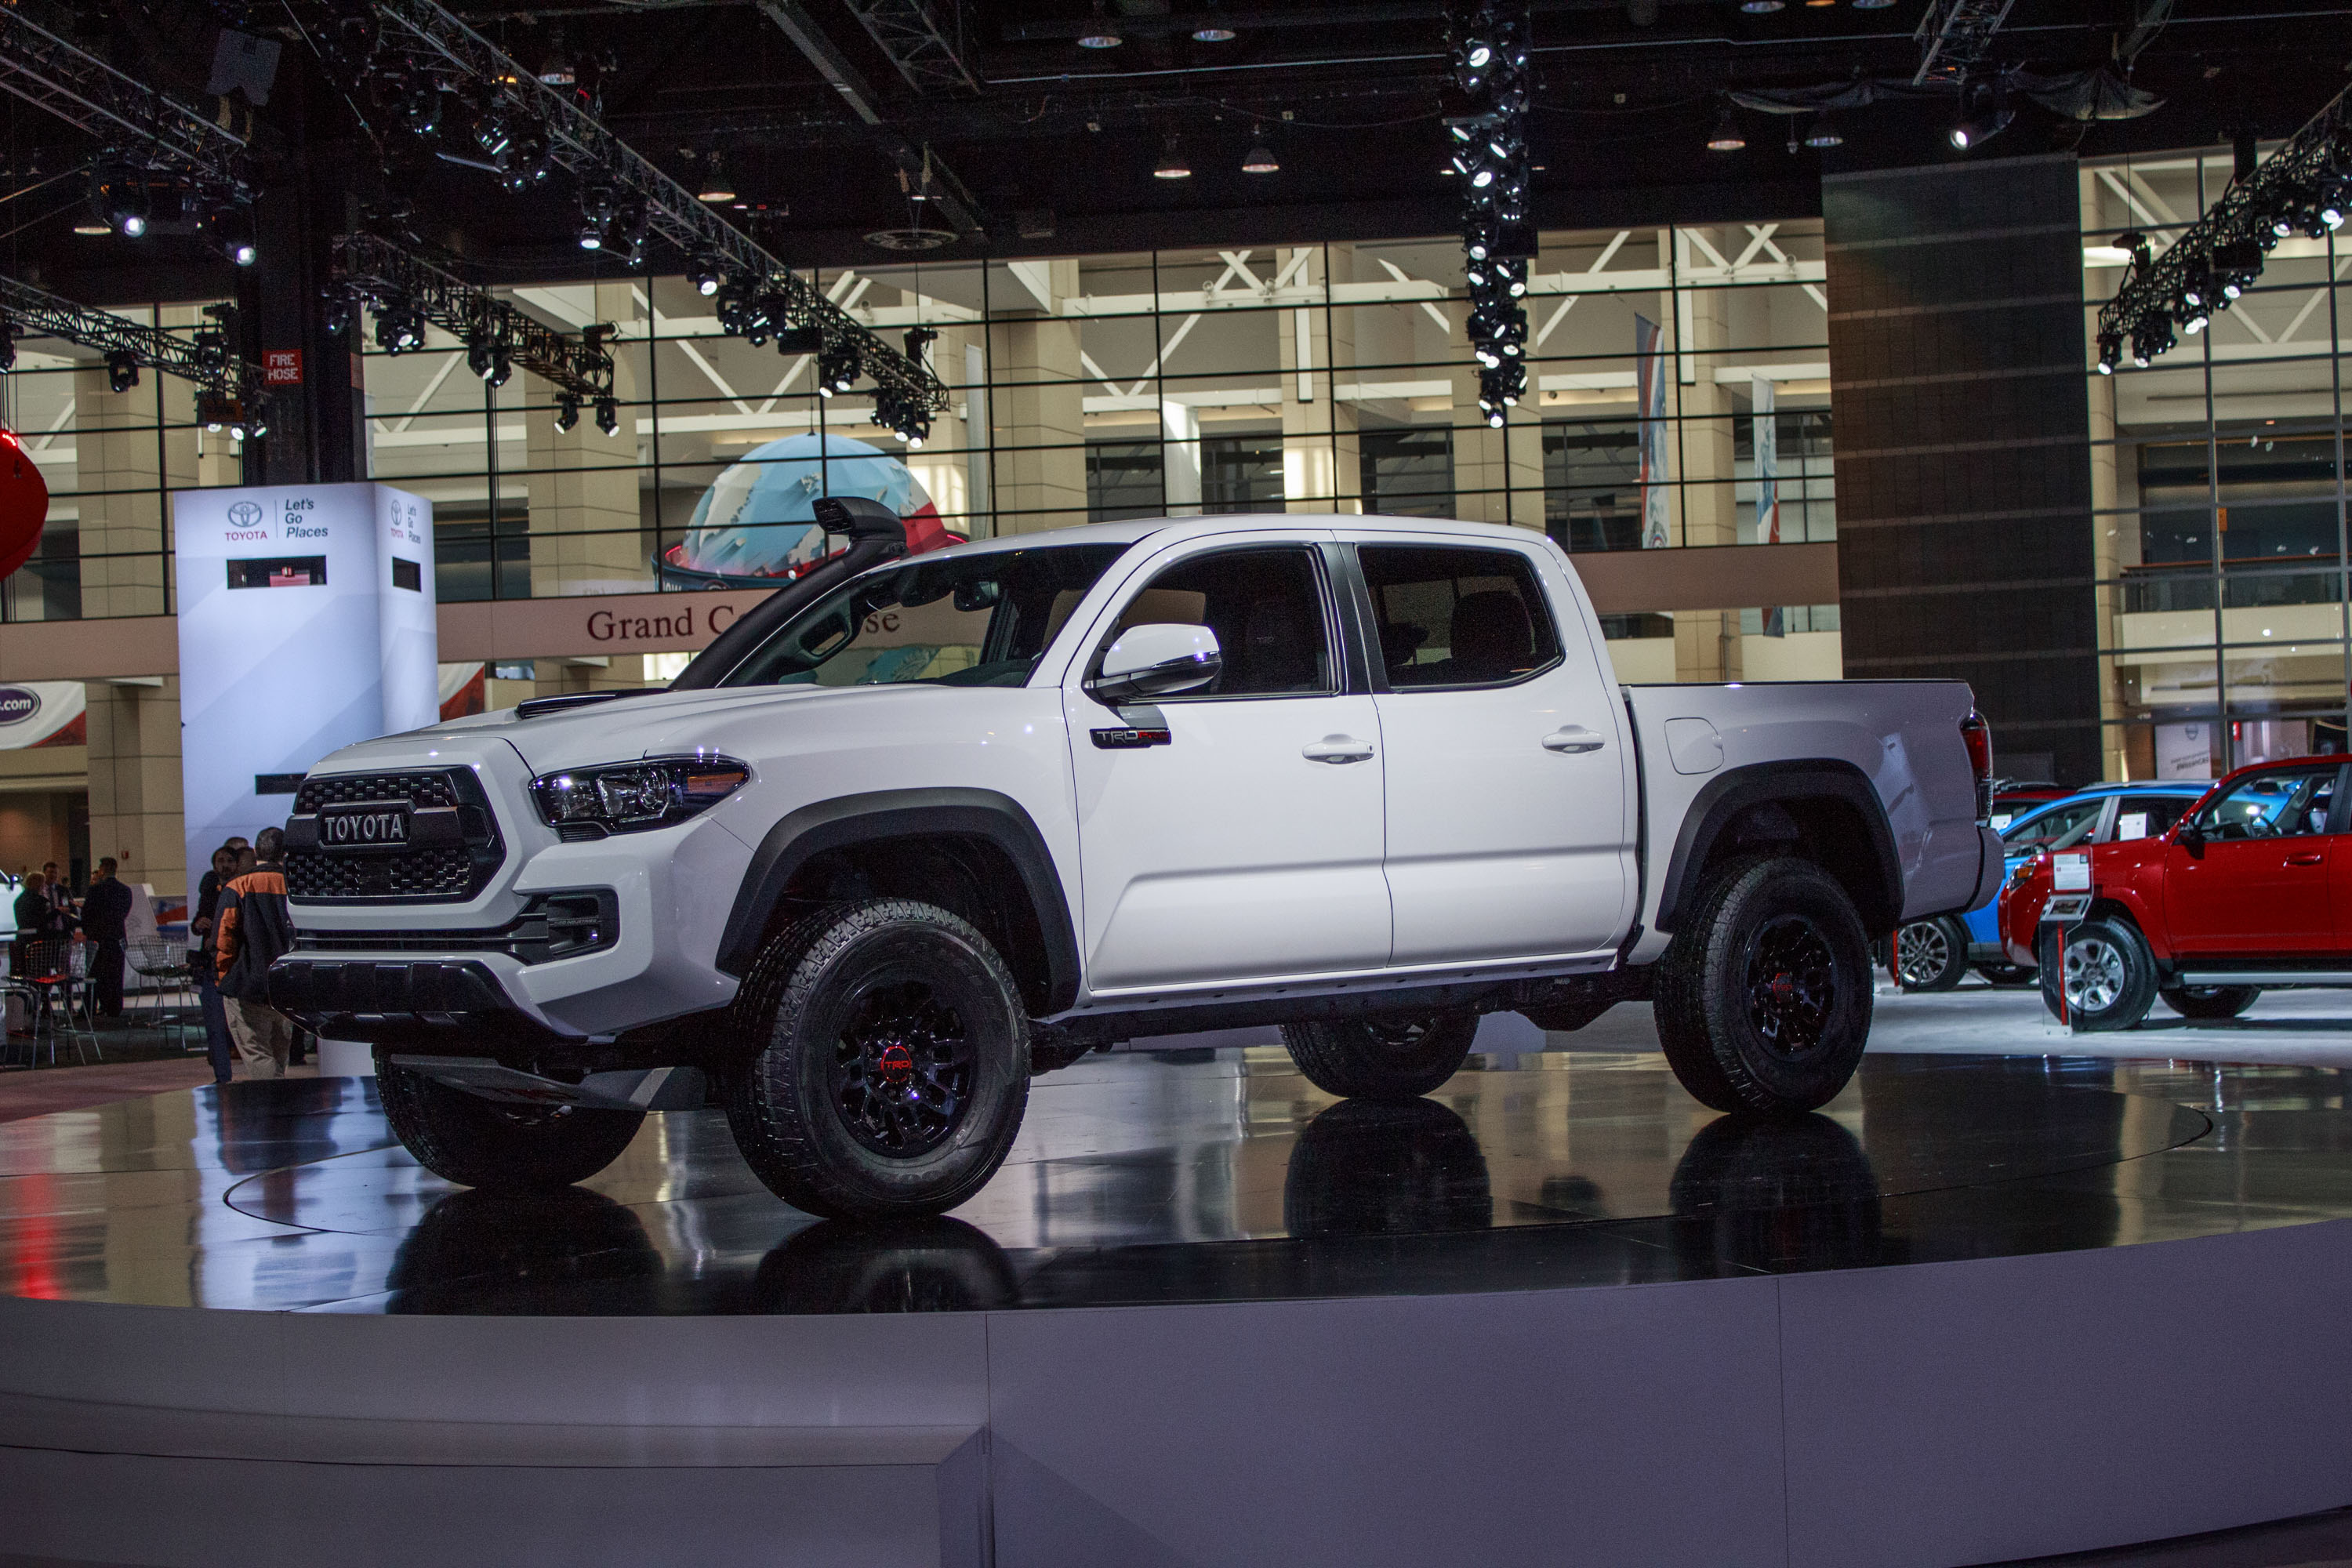 2019 Toyota Tacoma Trd Pro Top Speed Long Bed Fuel Hostage Wheels